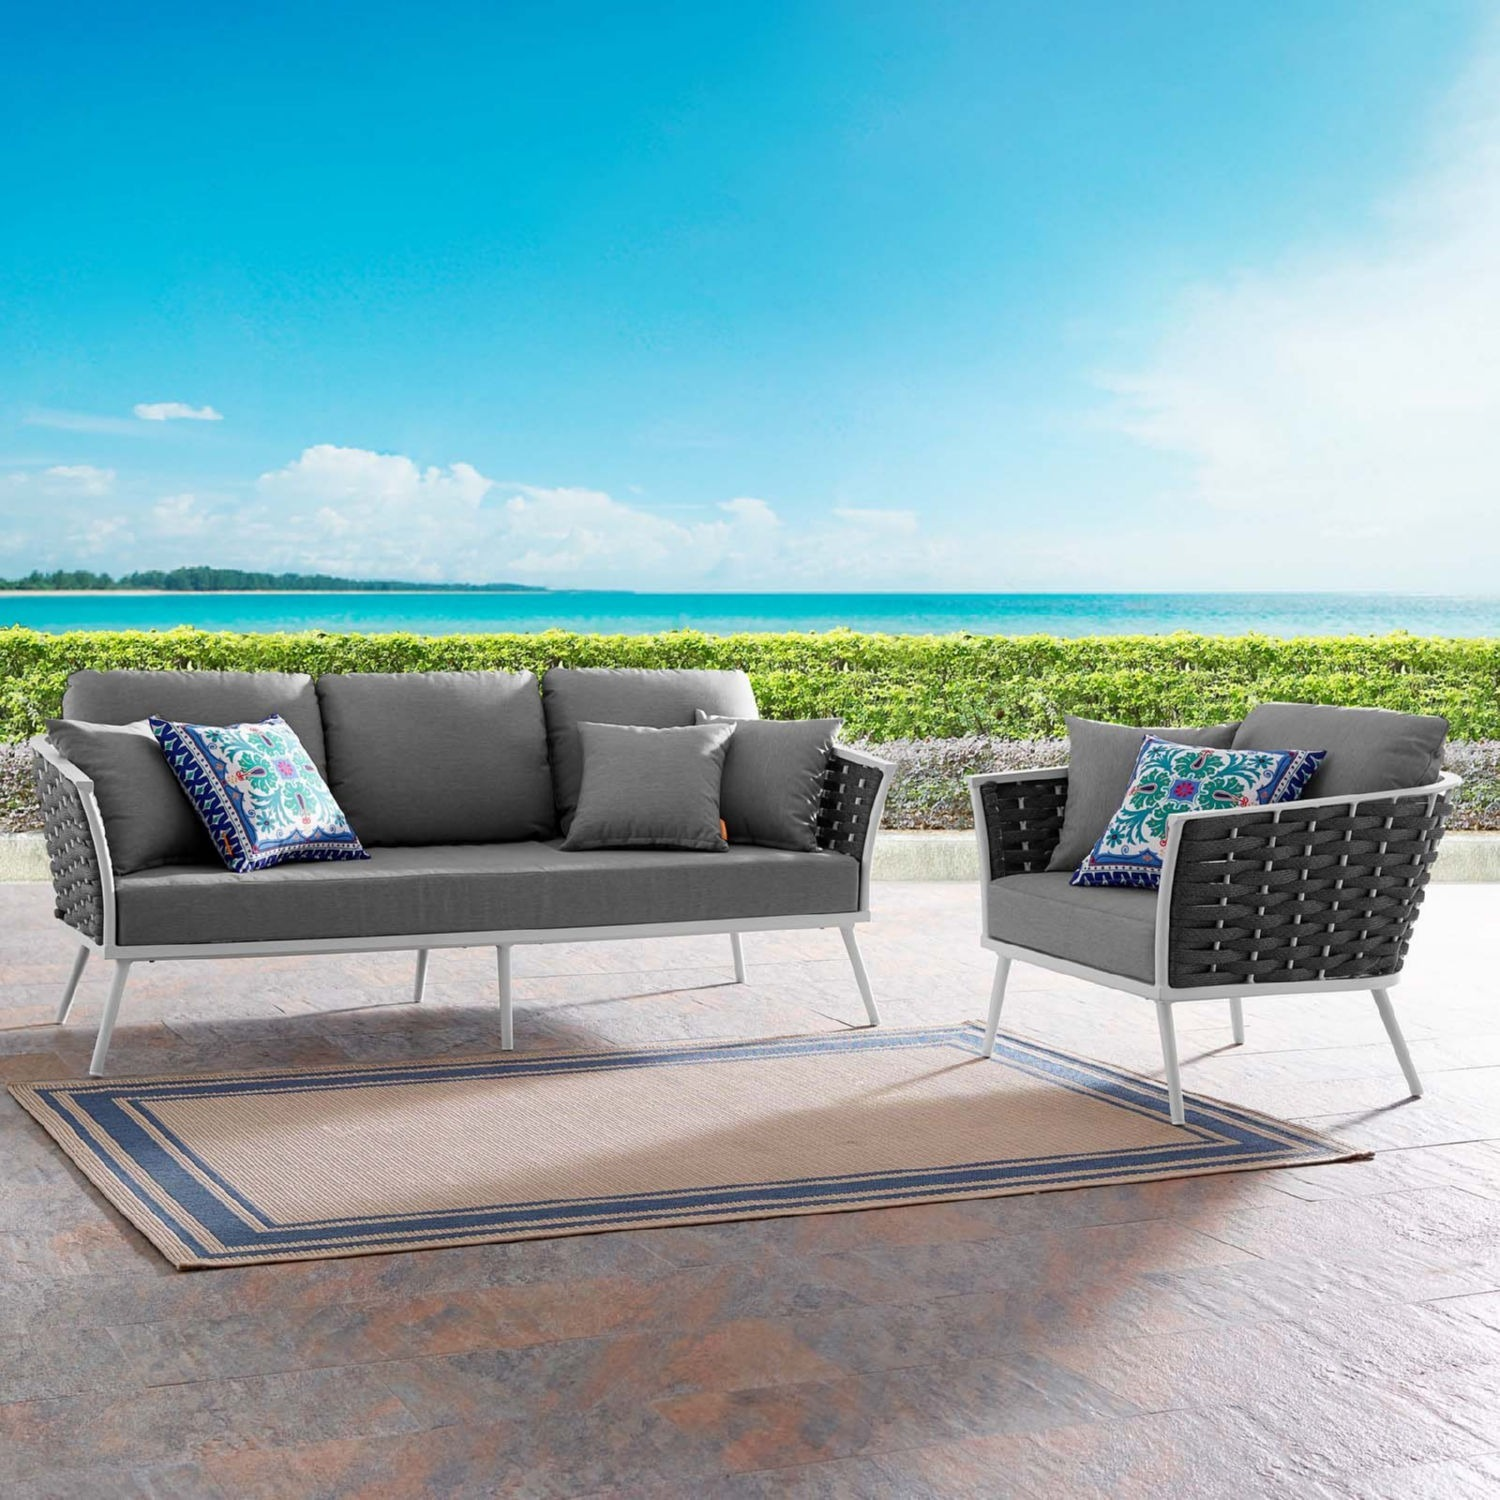 2-Piece Outdoor Sectional In Gray Foam Padding - image-7